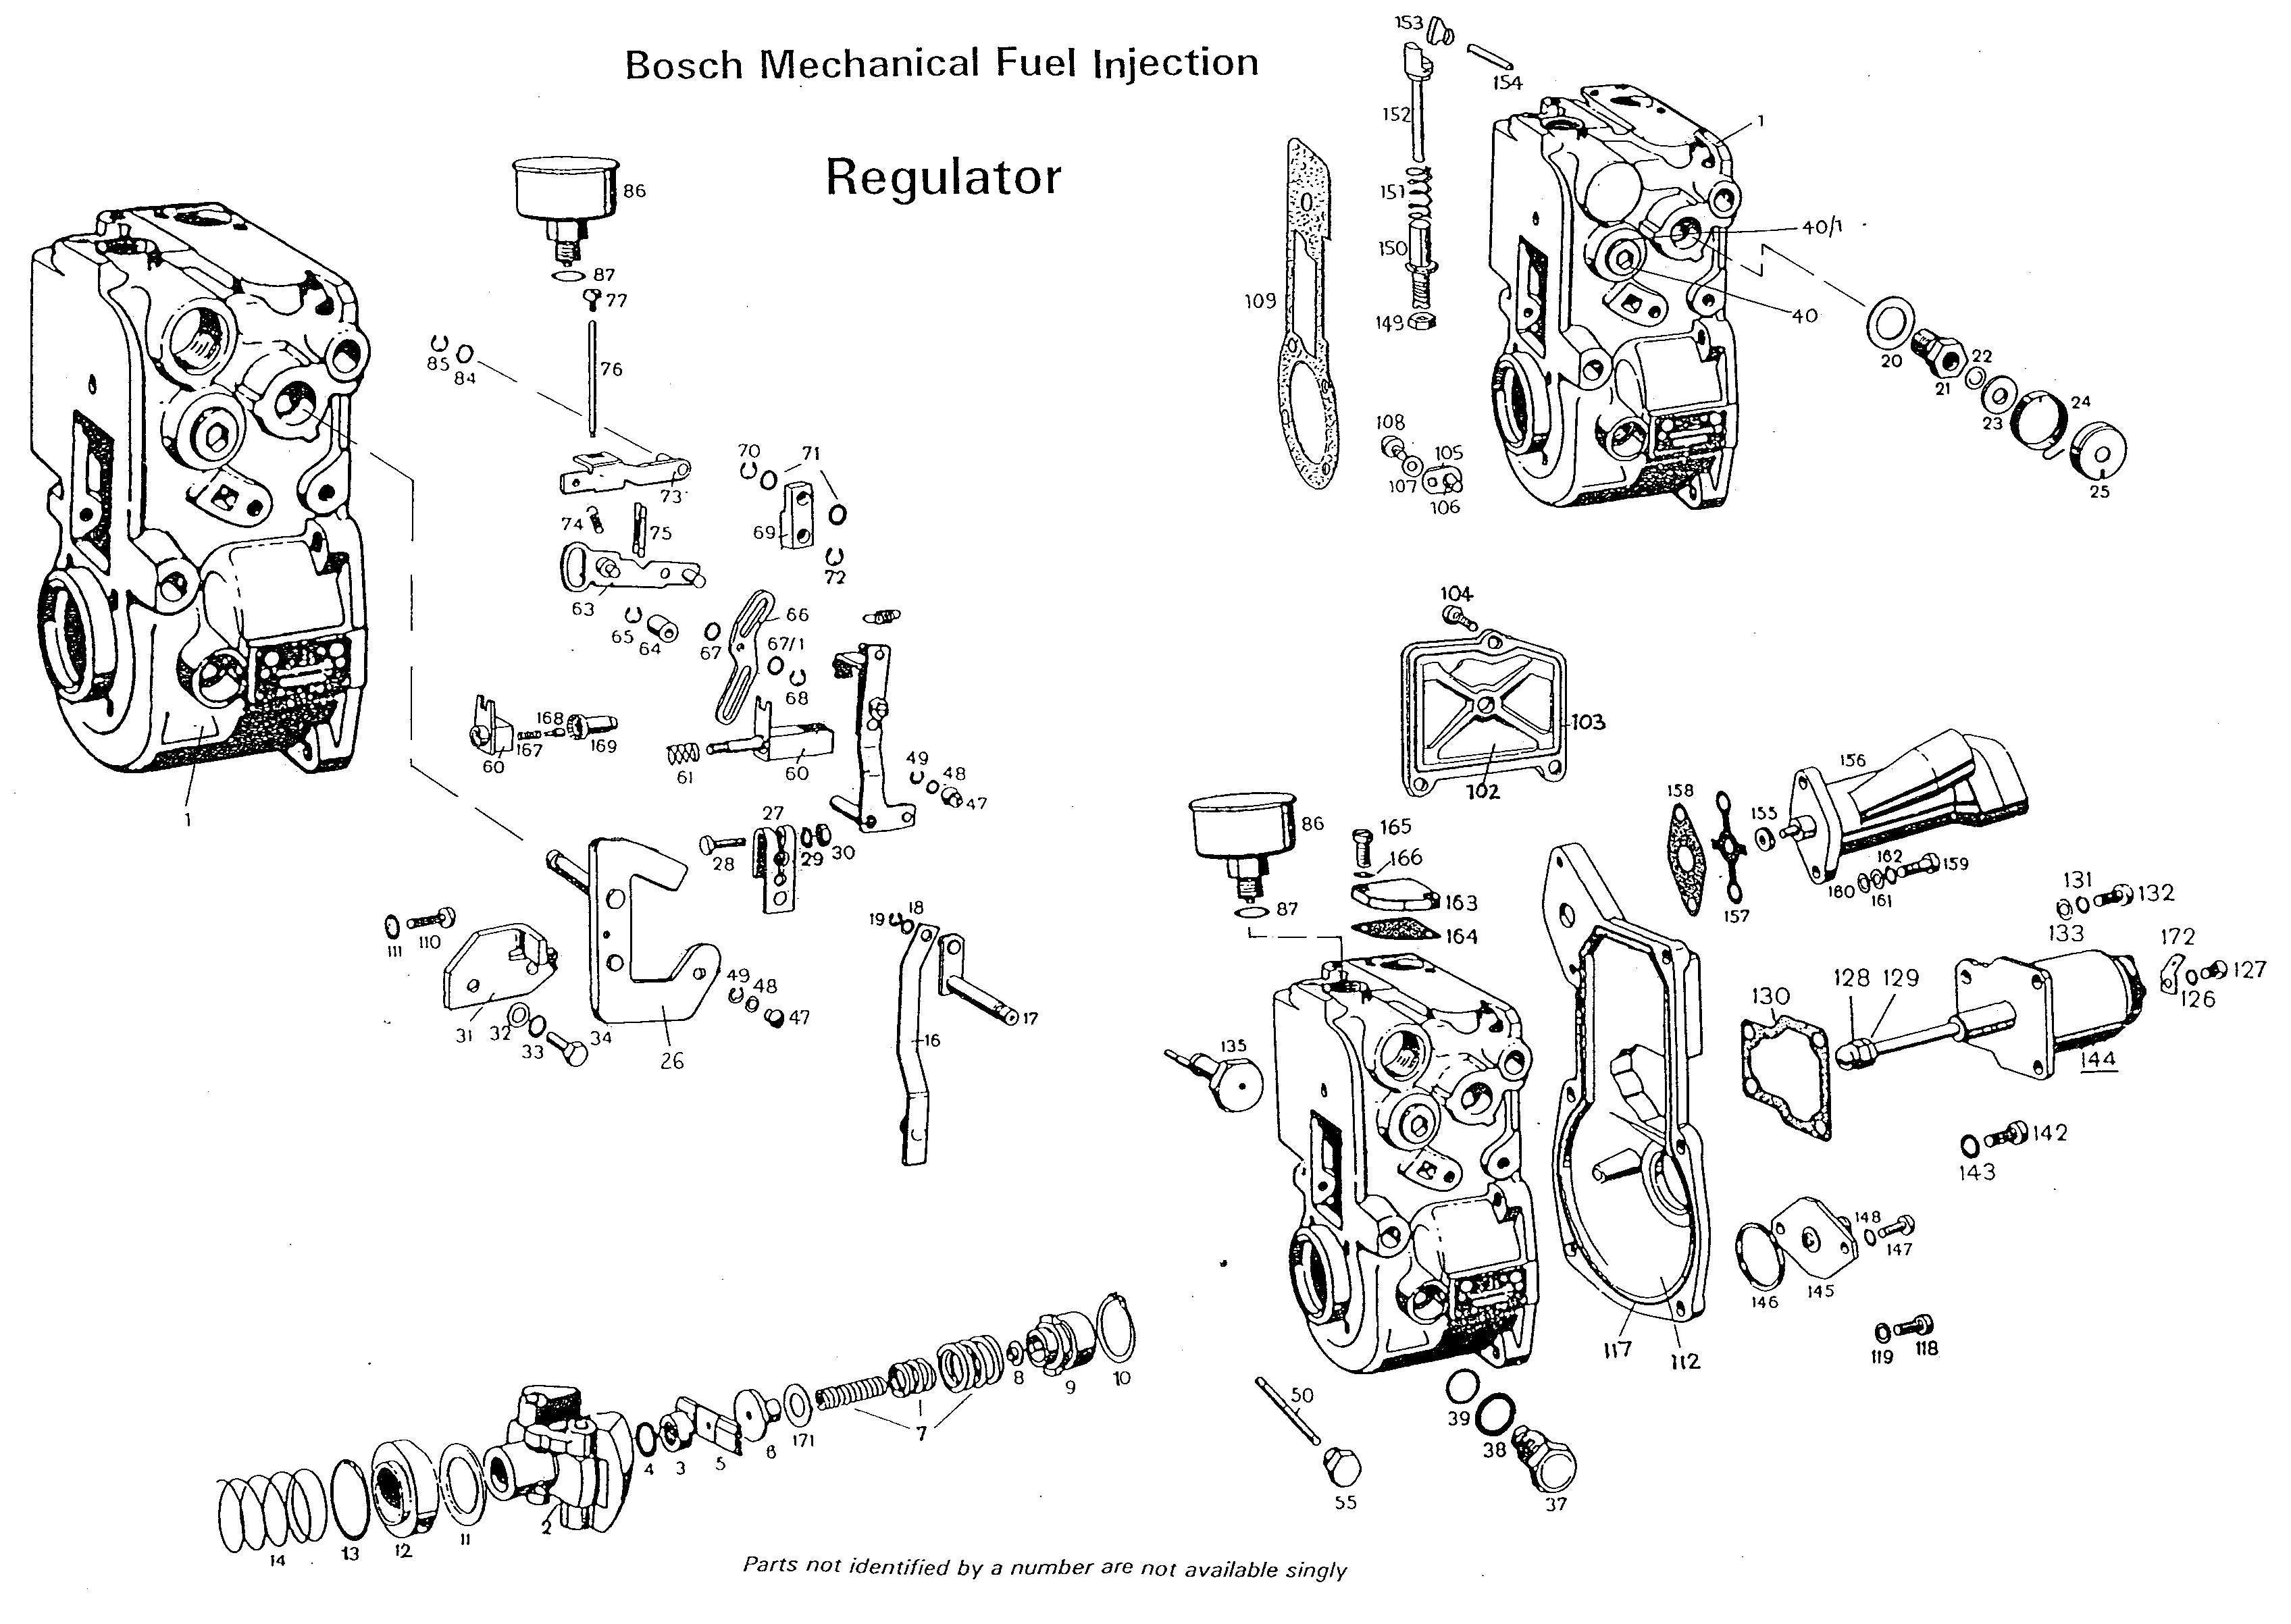 Bosch Ve Injection Pump Breakdown Pictures To Pin On